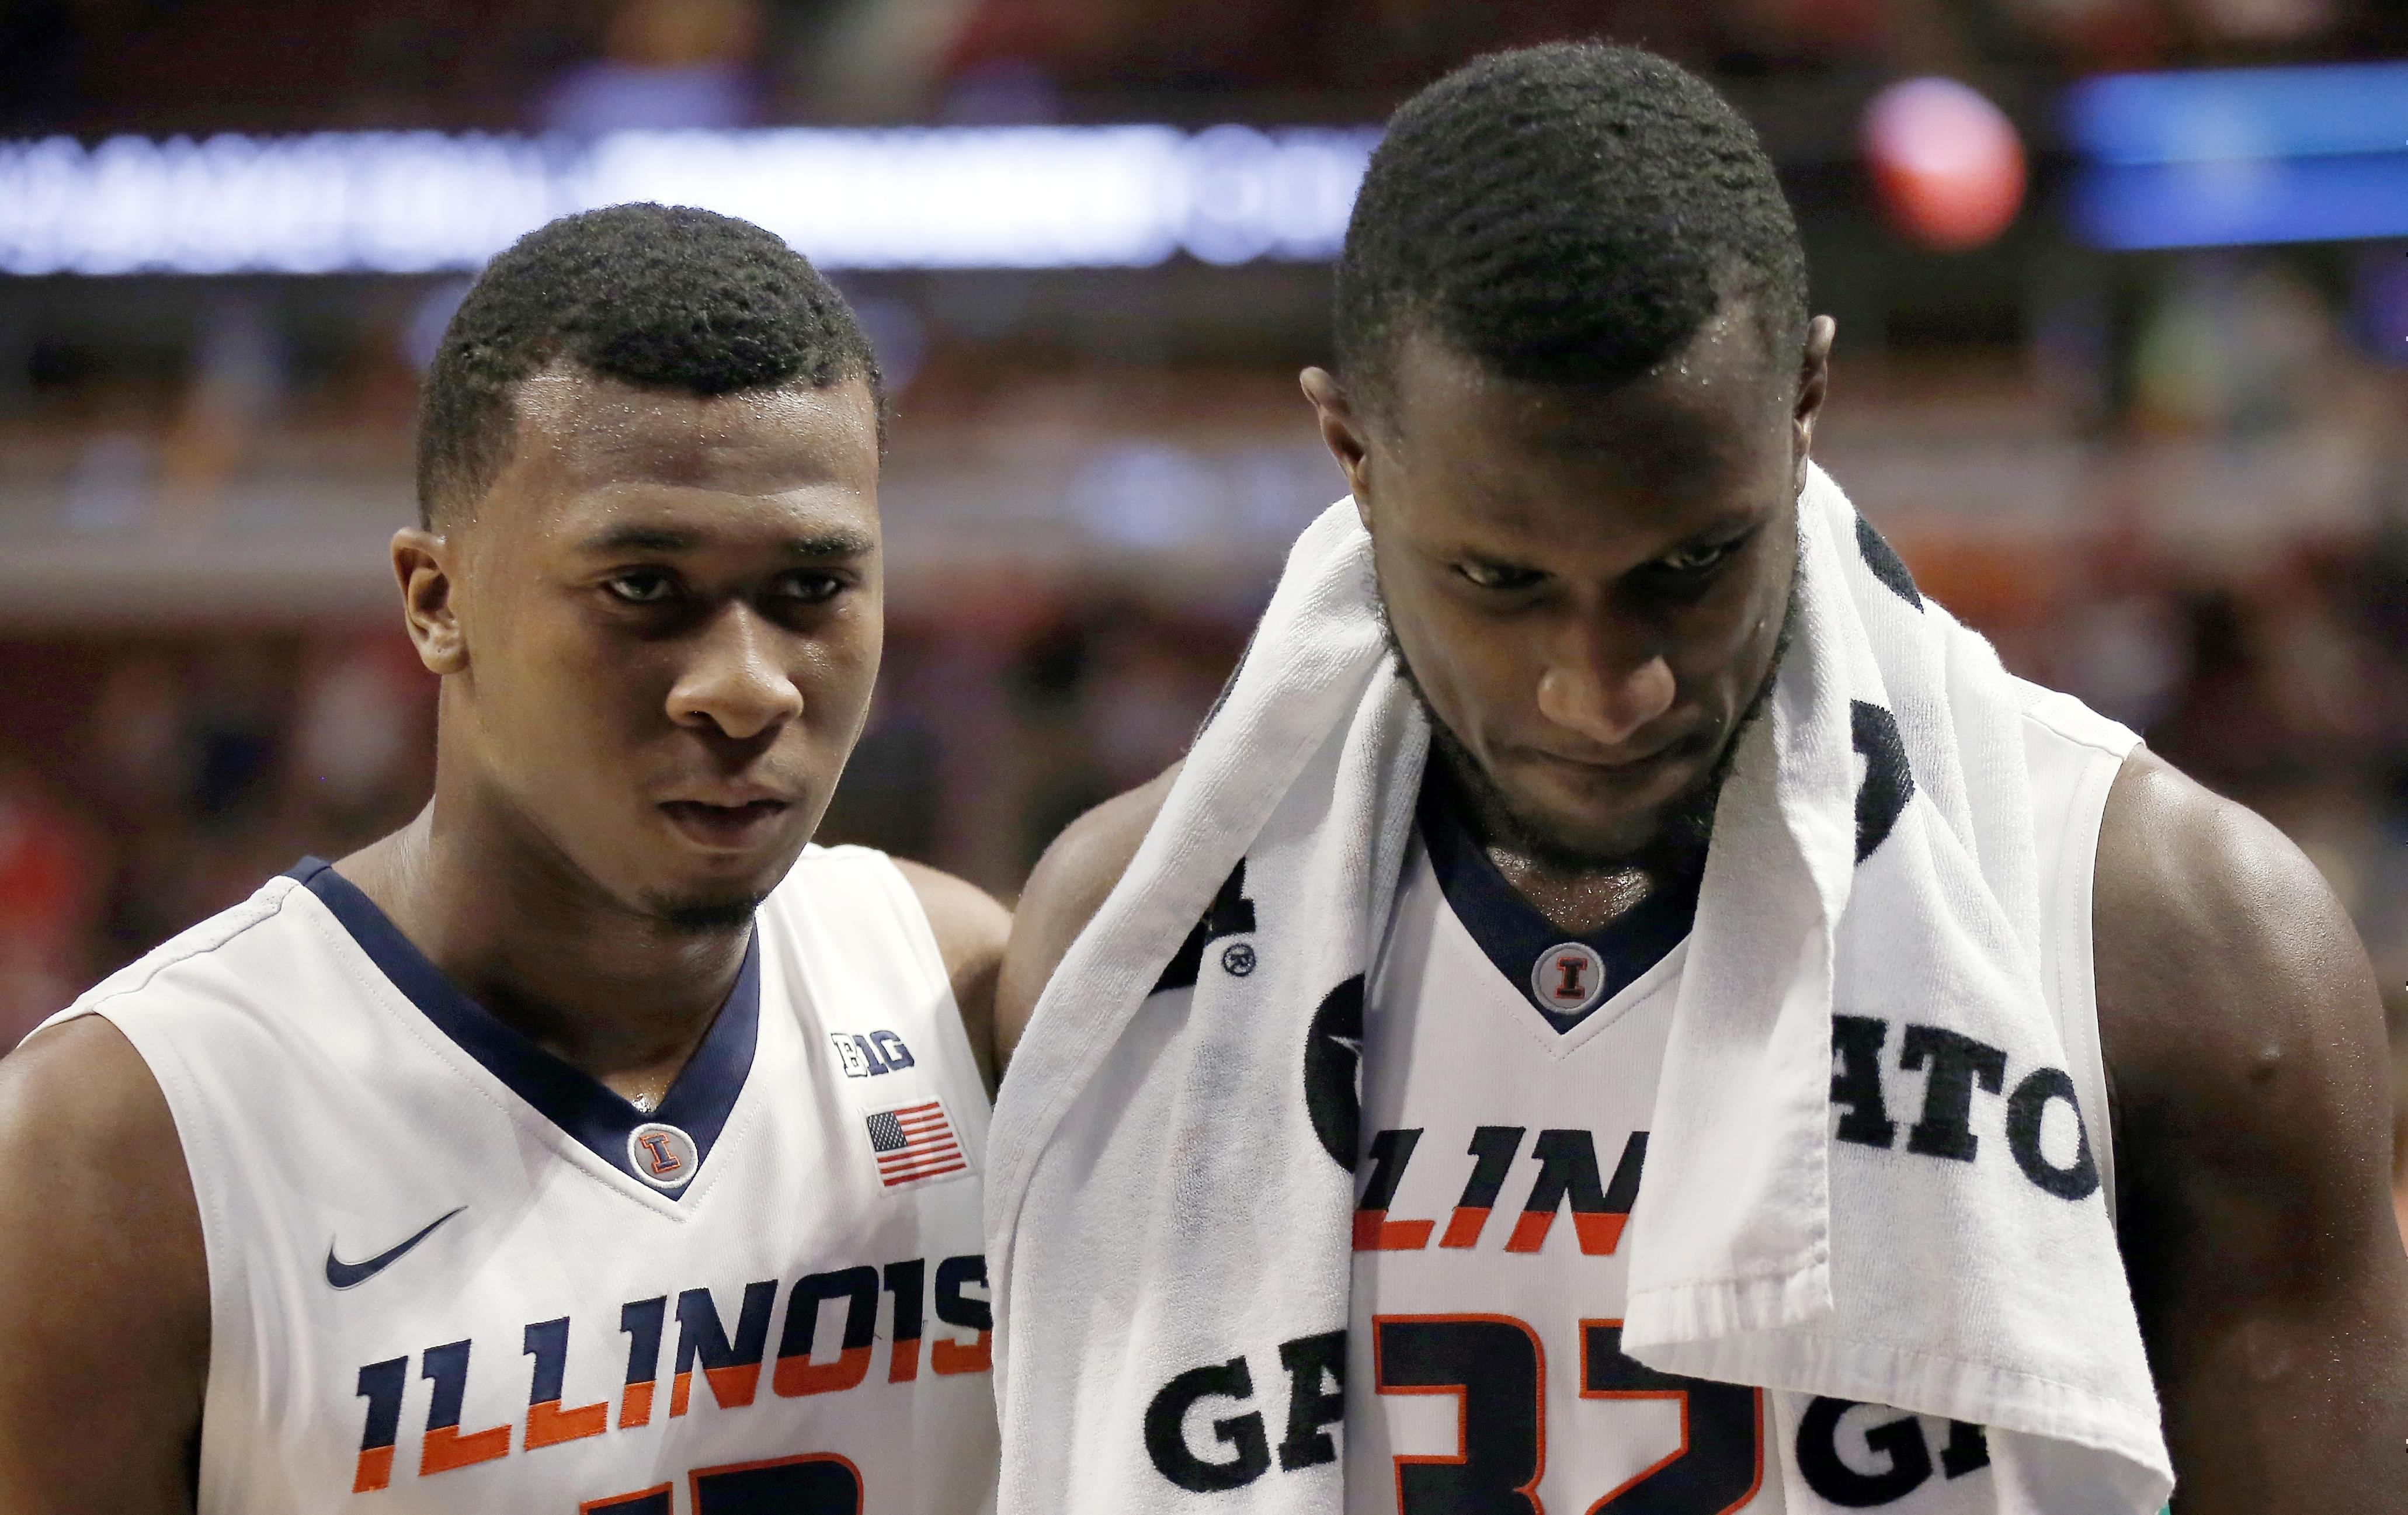 Illinois' Leron Black (12) and Nnanna Egwu (32) walk off the court after an NCAA college basketball game against Michigan in the second round of the Big Ten Conference tournament, Thursday, March 12, 2015, in Chicago.